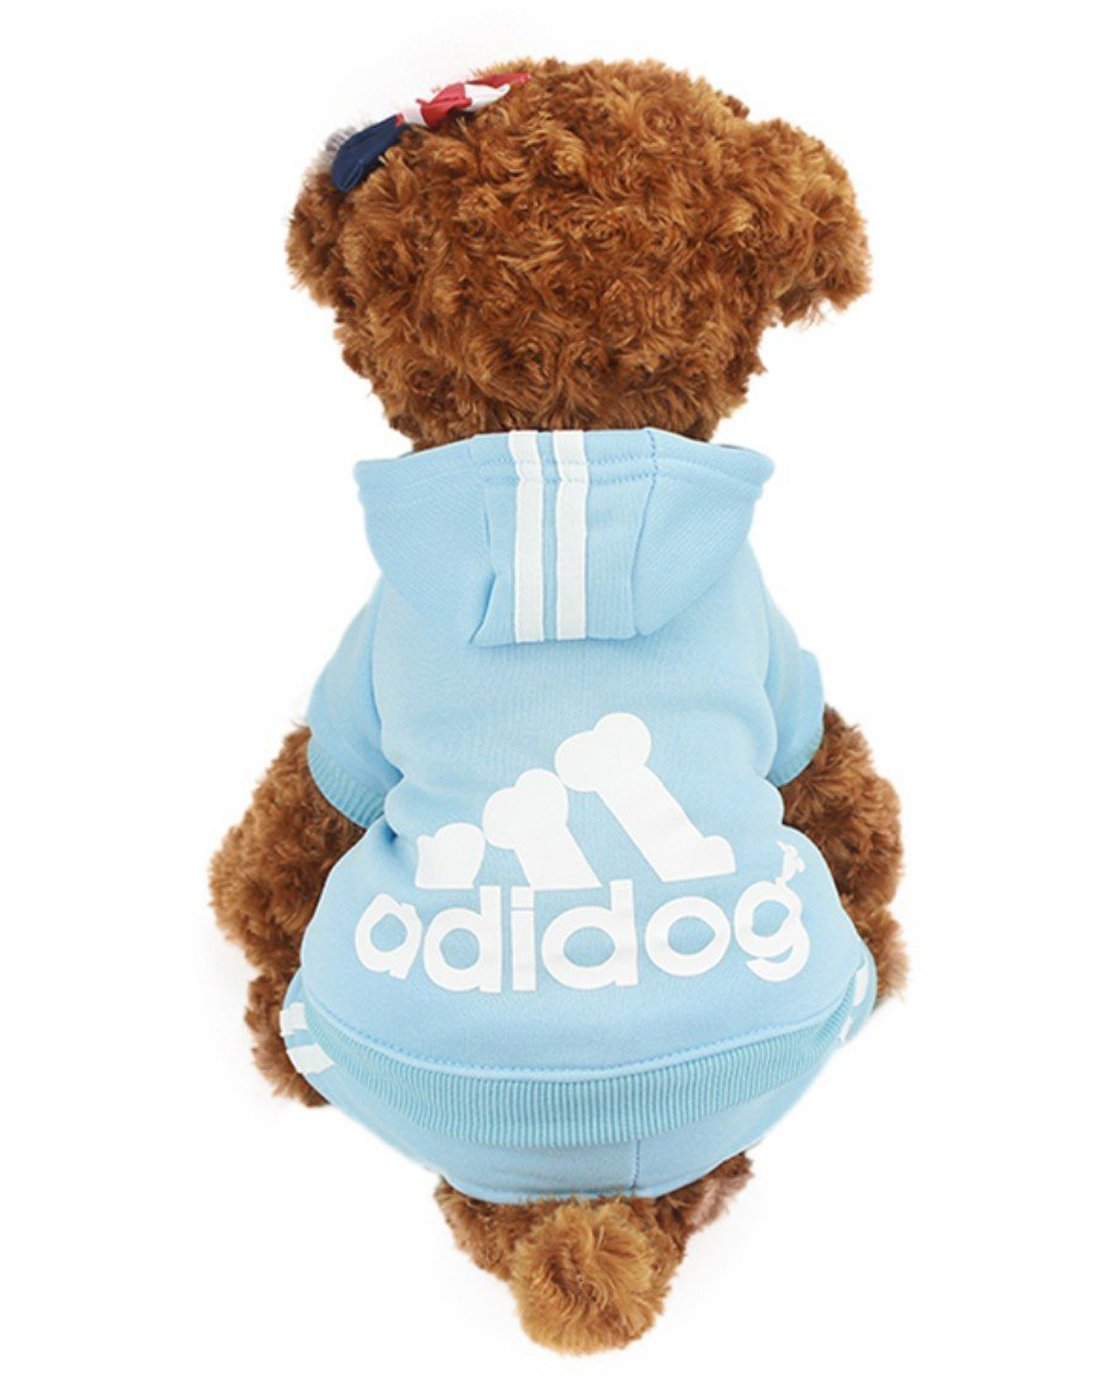 GabeFish Puppy Print Sweatshirt Dogs Hoodies Warm For Small Pets Four Legs Clothes Cats Sports Jackets 7 Optional Blue X-Small